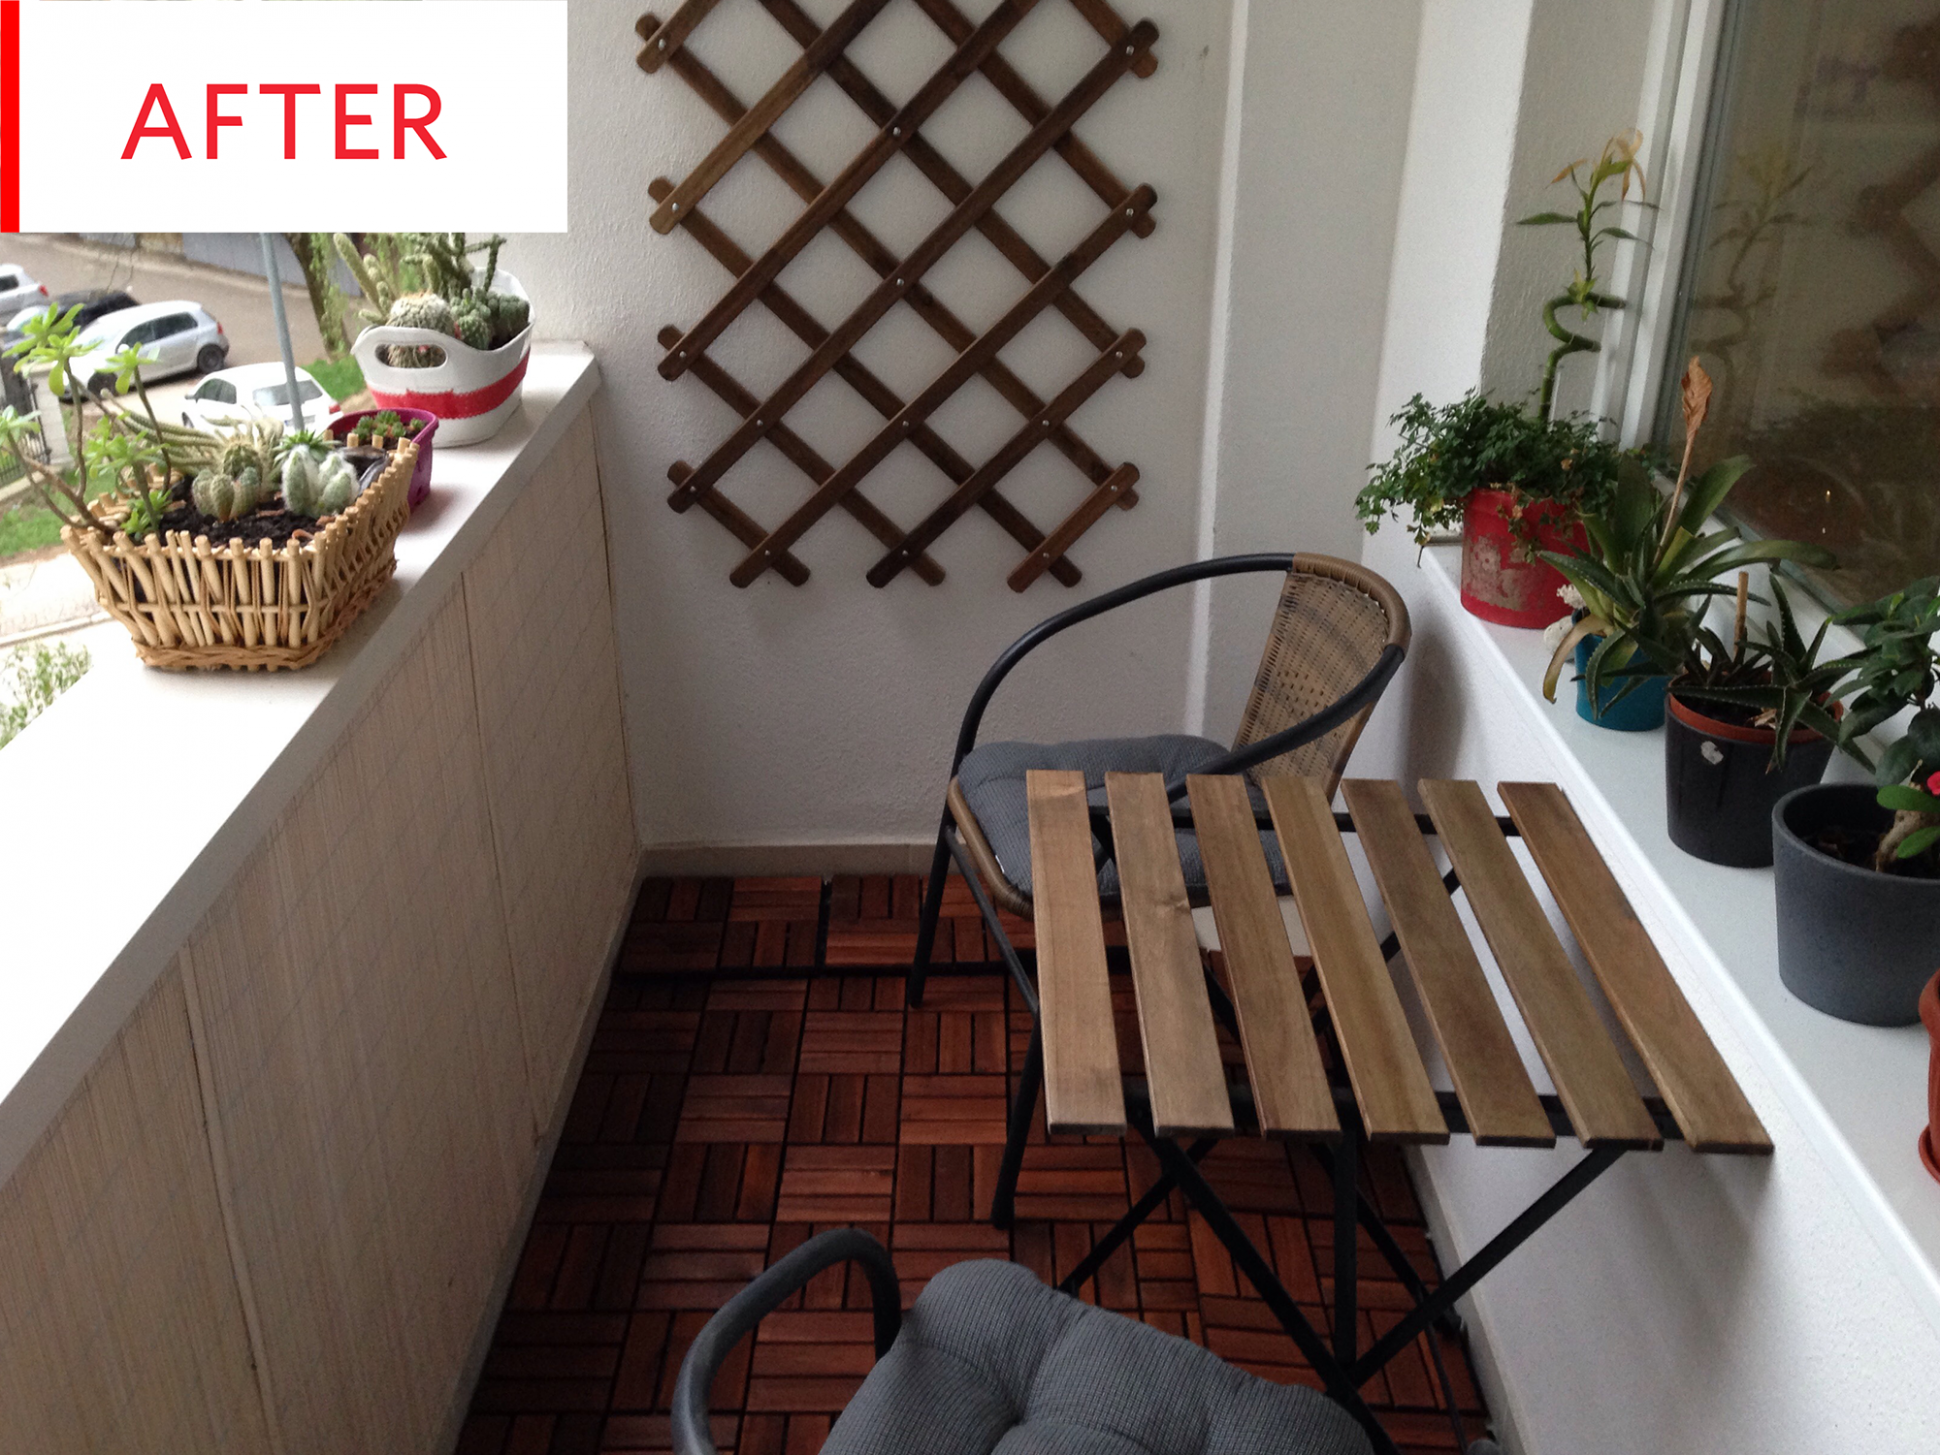 Before and After: This Cold, Concrete Balcony Gets an Easy $10 ..